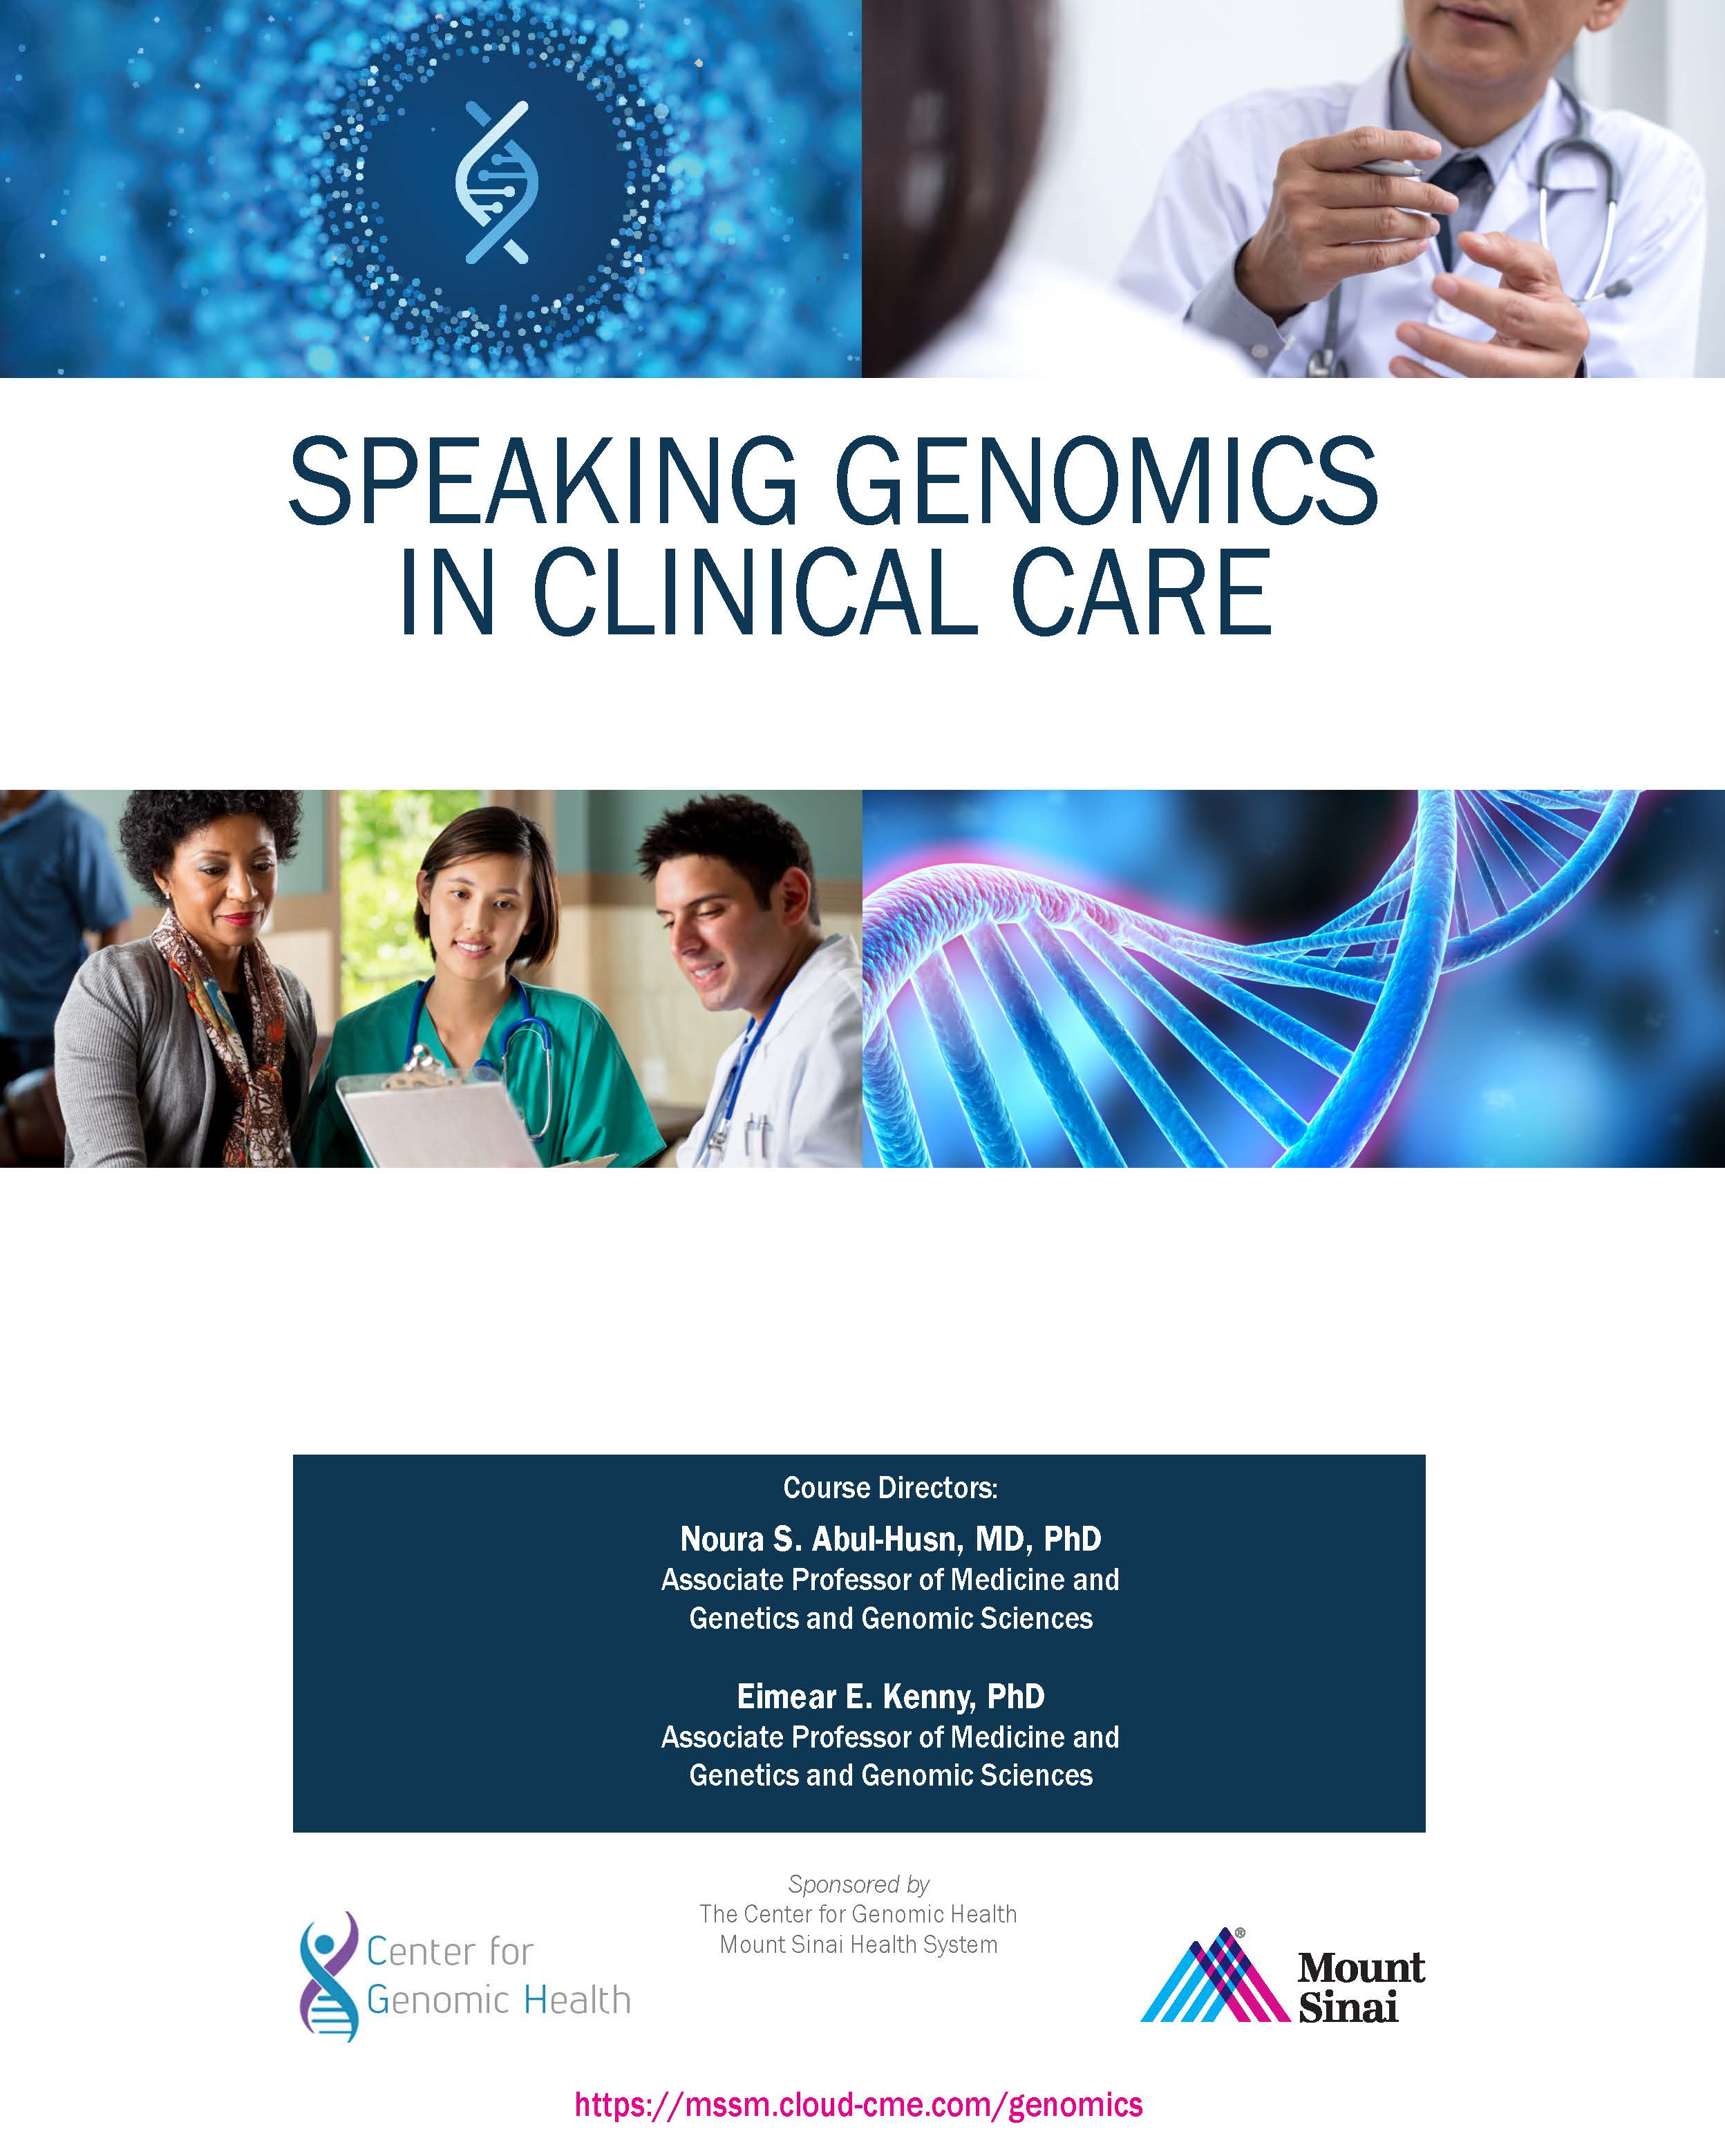 Speaking Genomics in Clinical Care Banner